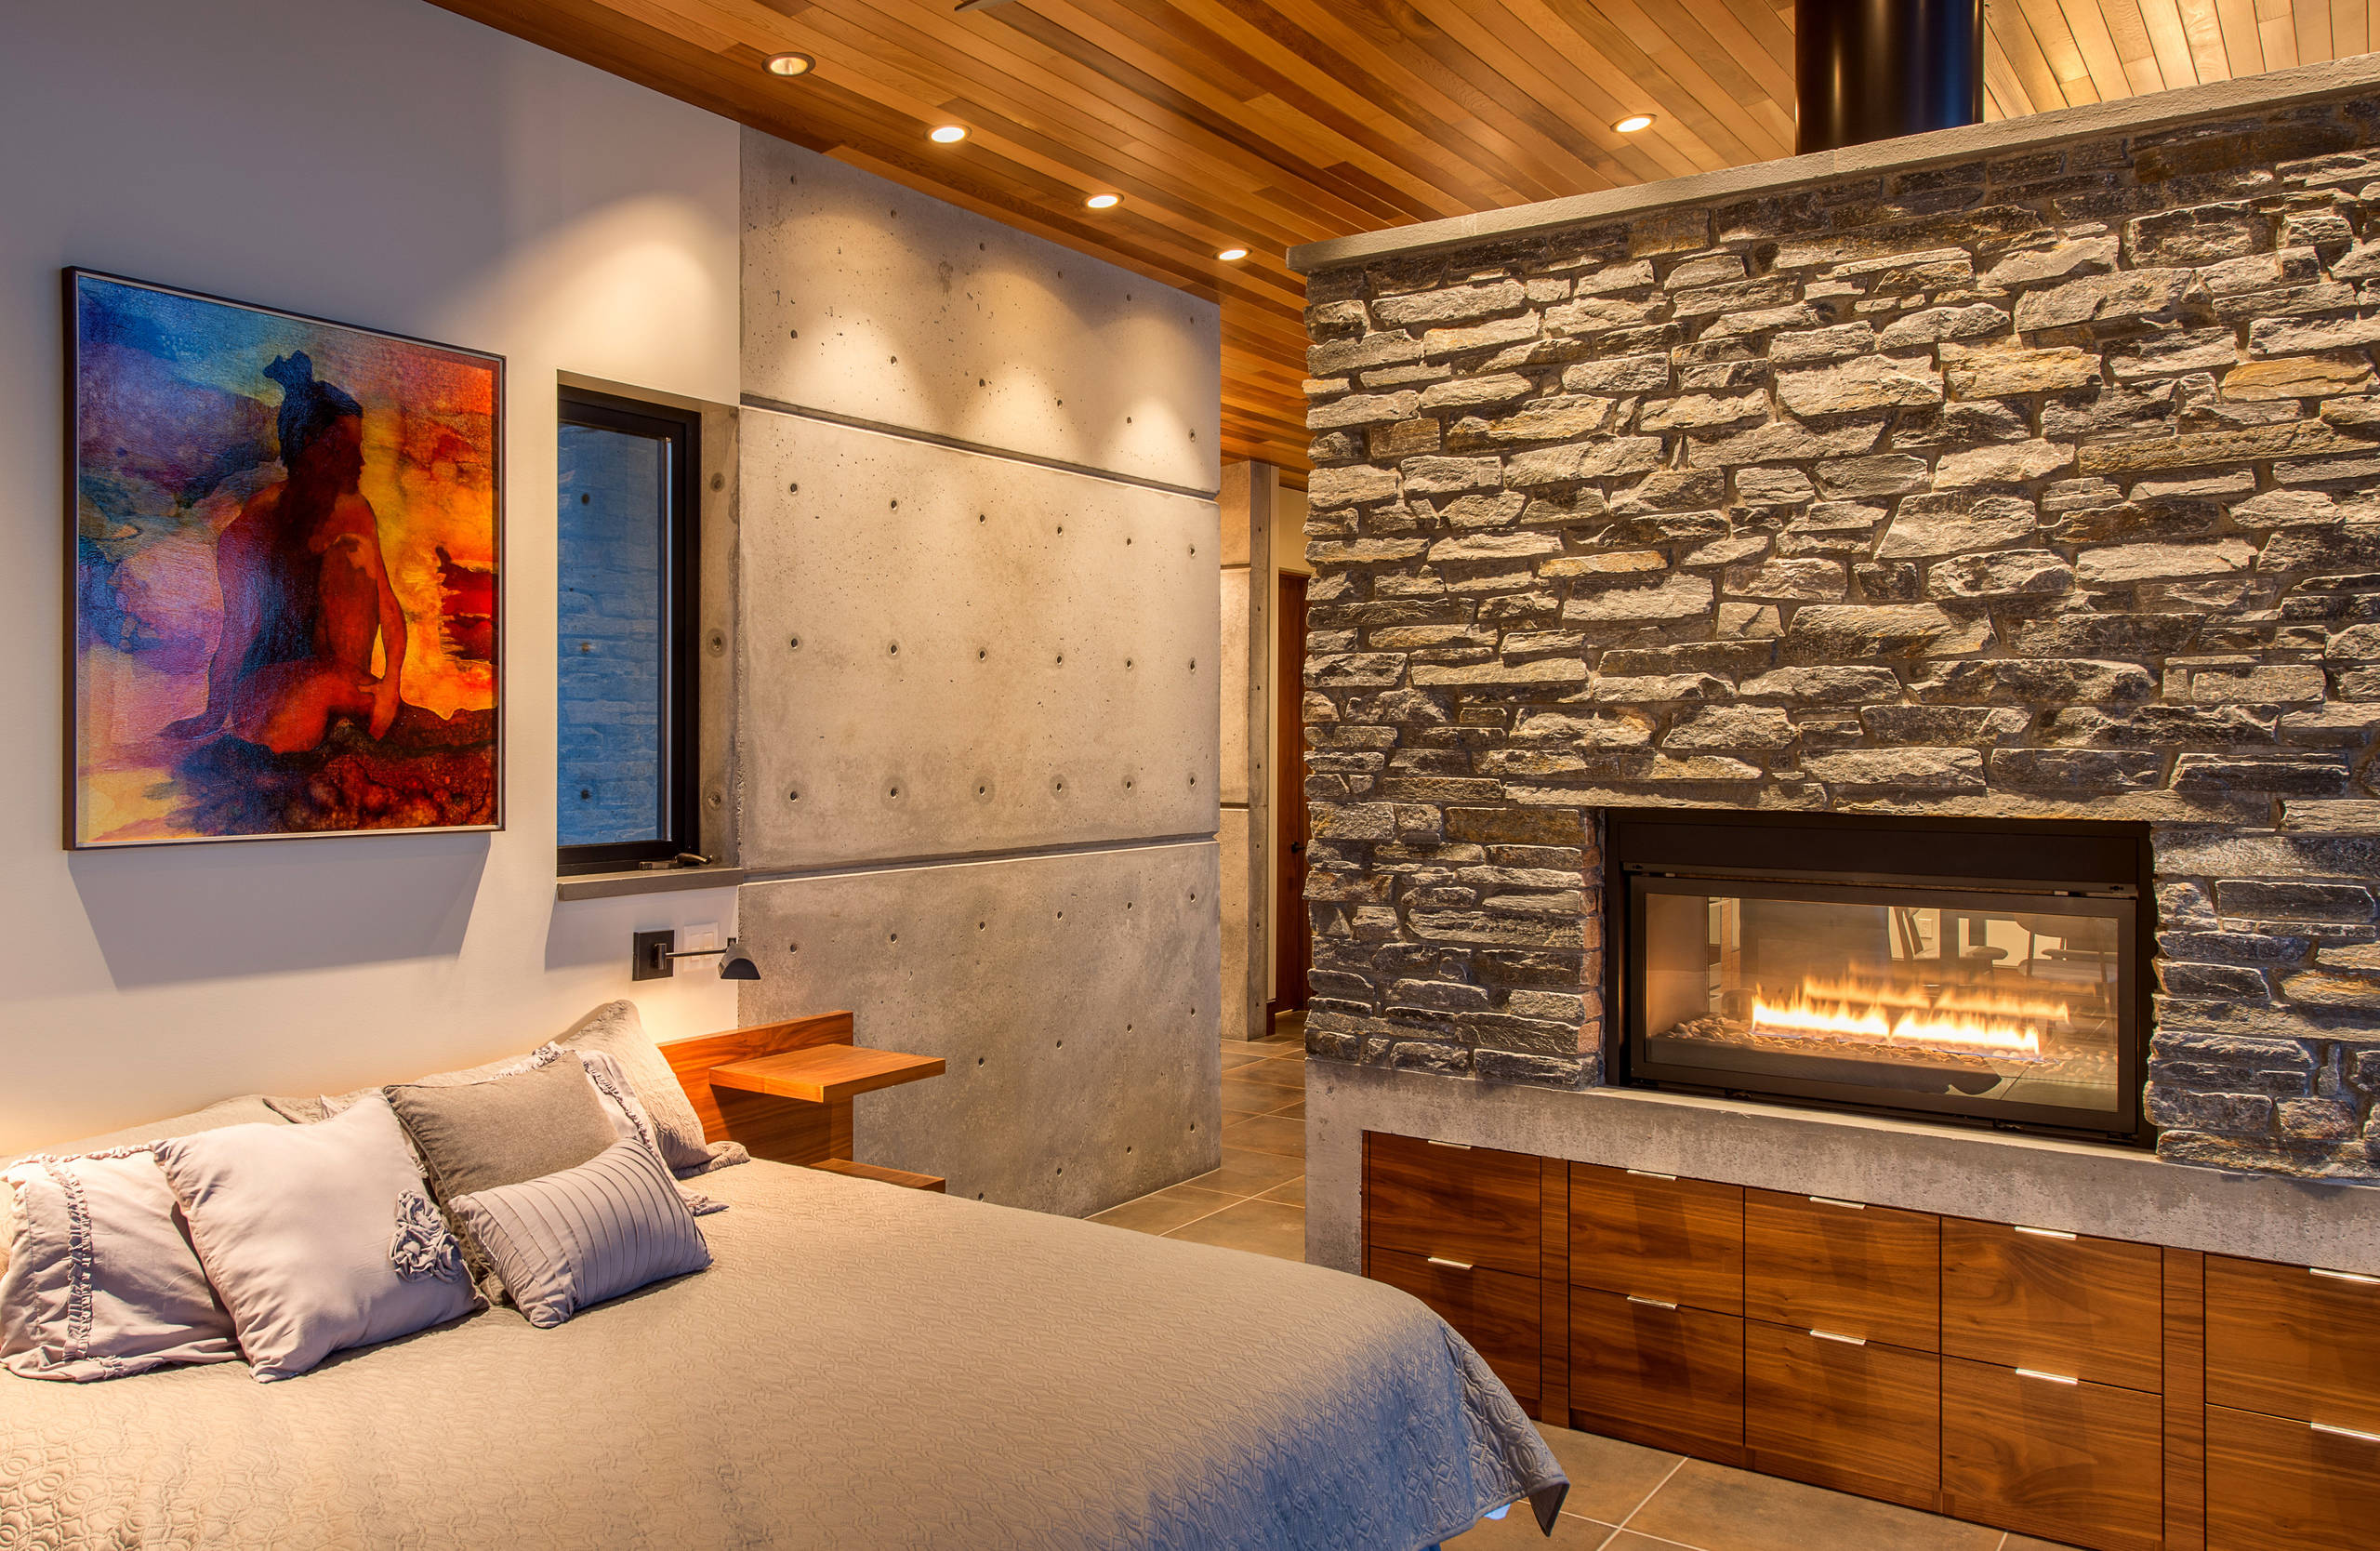 75 Beautiful Bedroom With A Wood Stove Pictures Ideas March 2021 Houzz